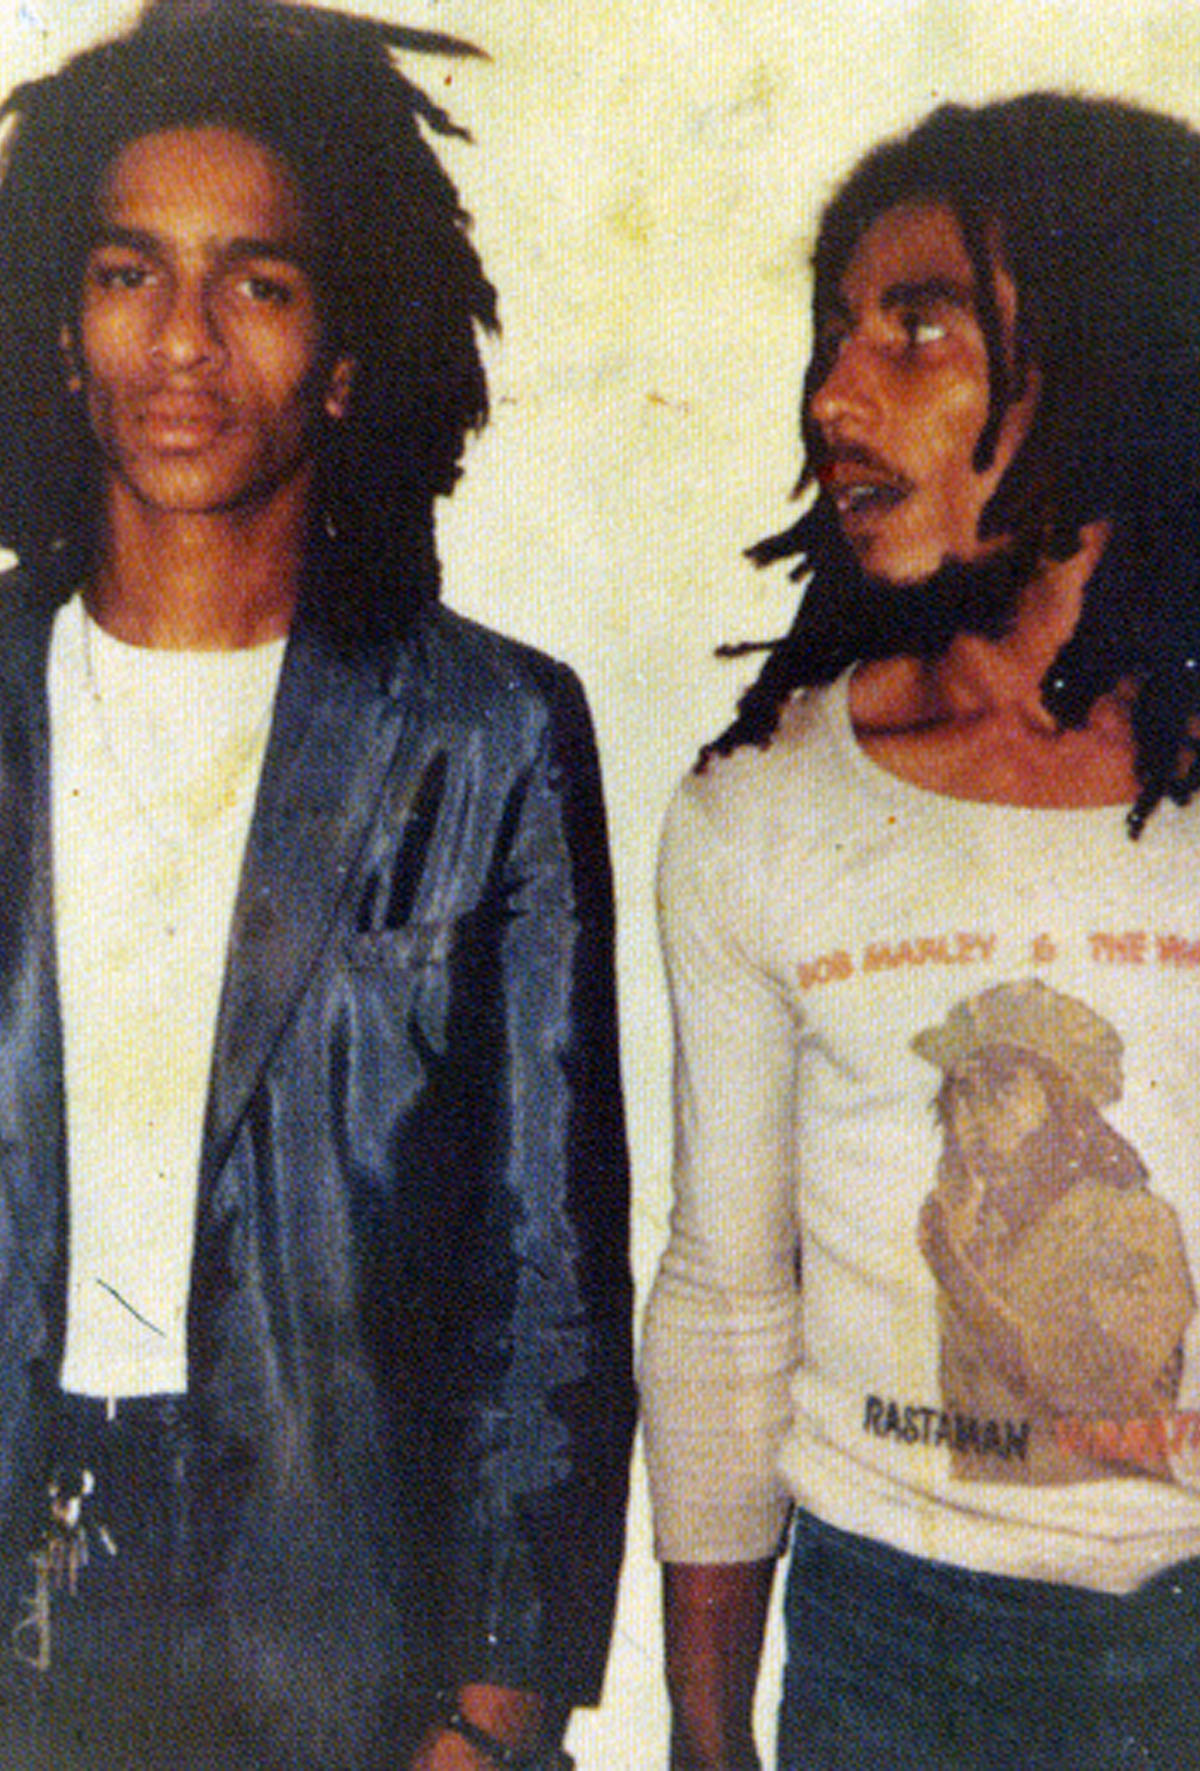 Don Letts and Bob Marley.